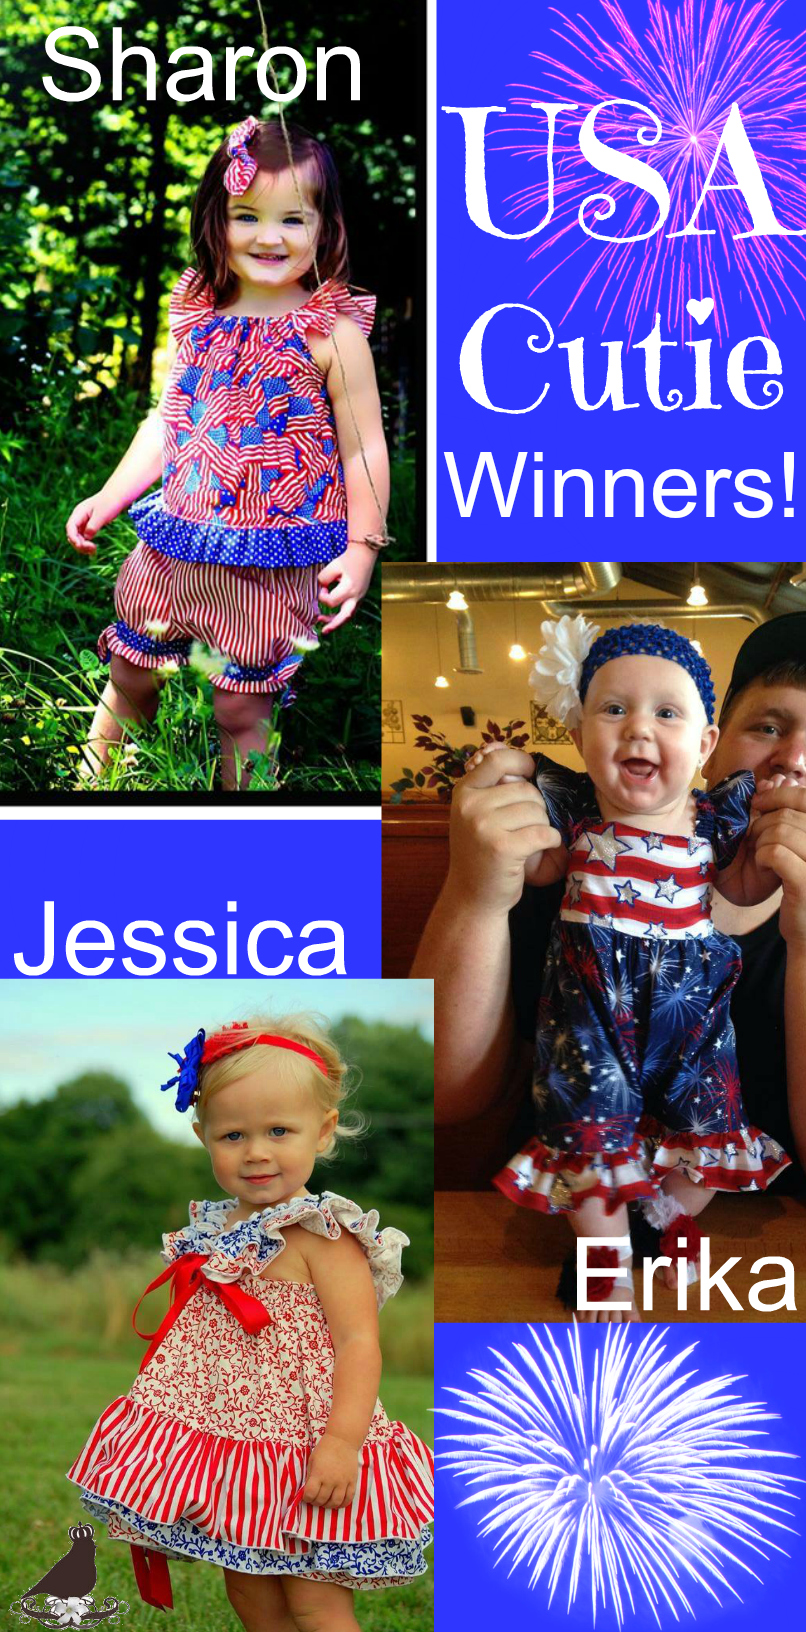 USA Cutie Winners